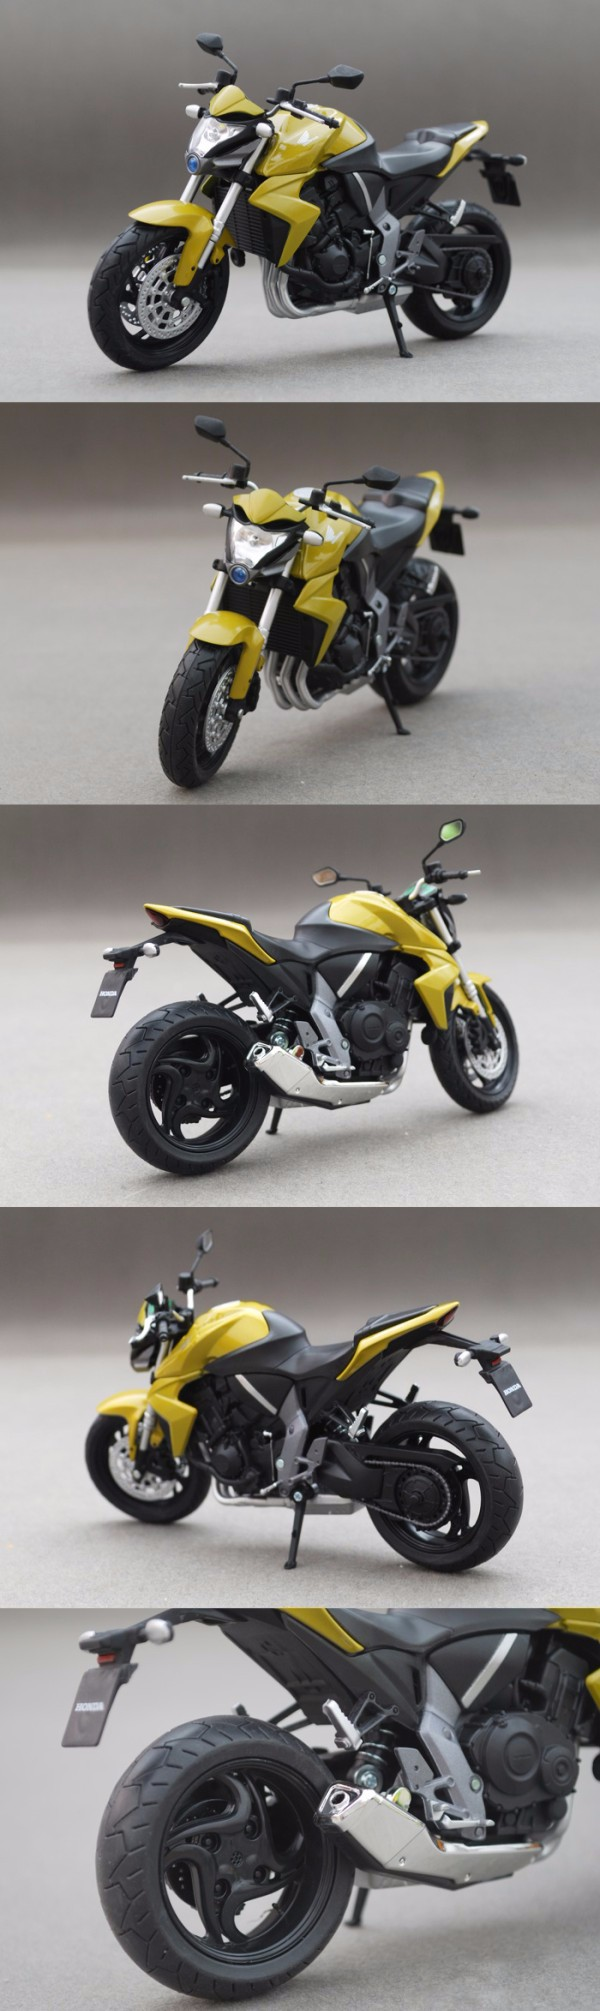 Motorcycle Models CB1000R Yellow 1:12 scale Alloy metal diecast models motor bike miniature race Toy For Gift Collection